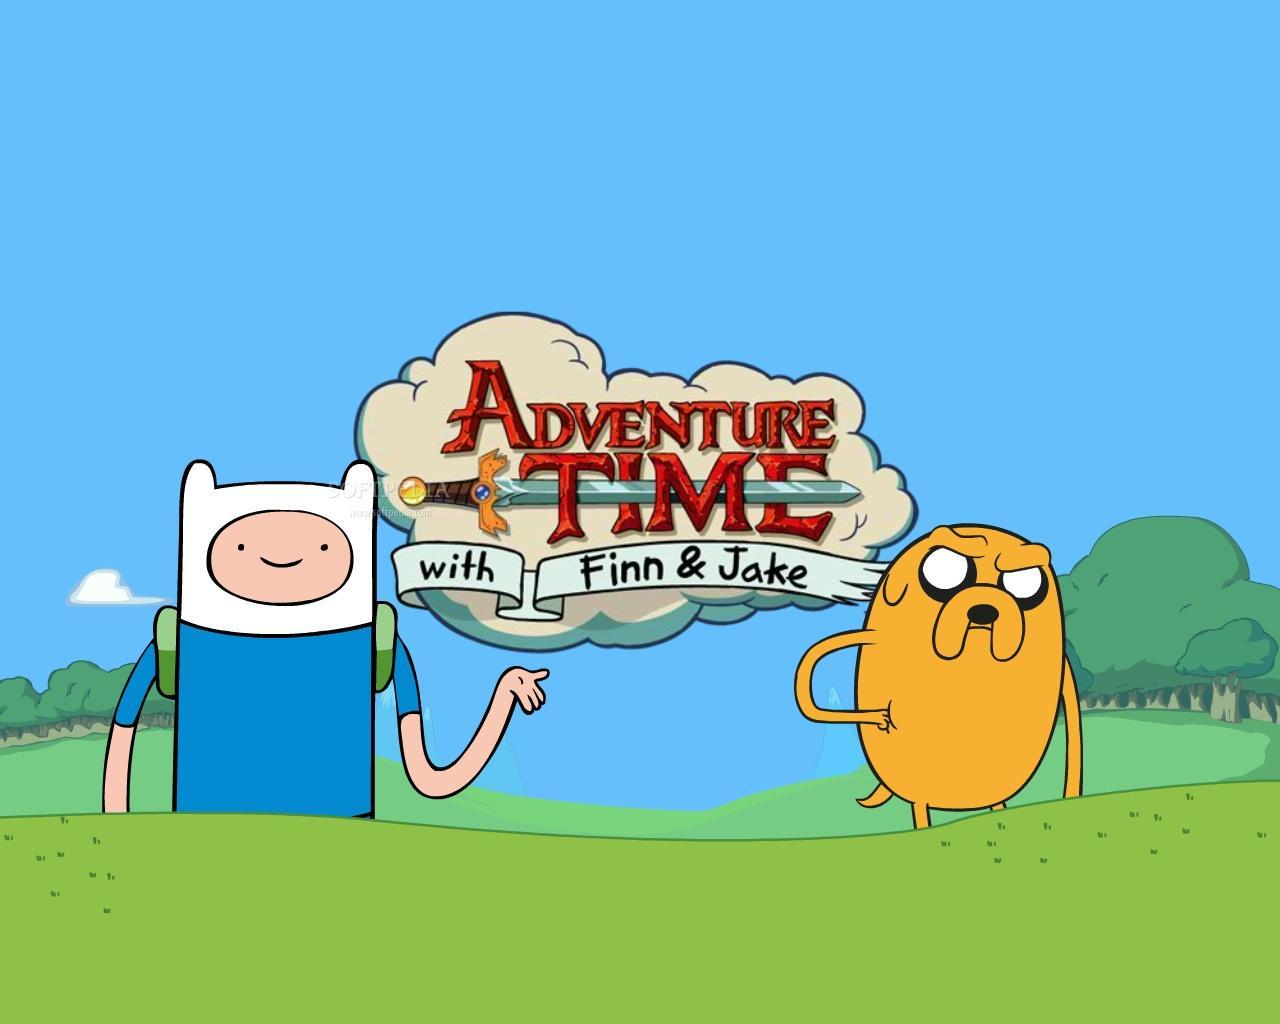 Favourite Adventure Time character?